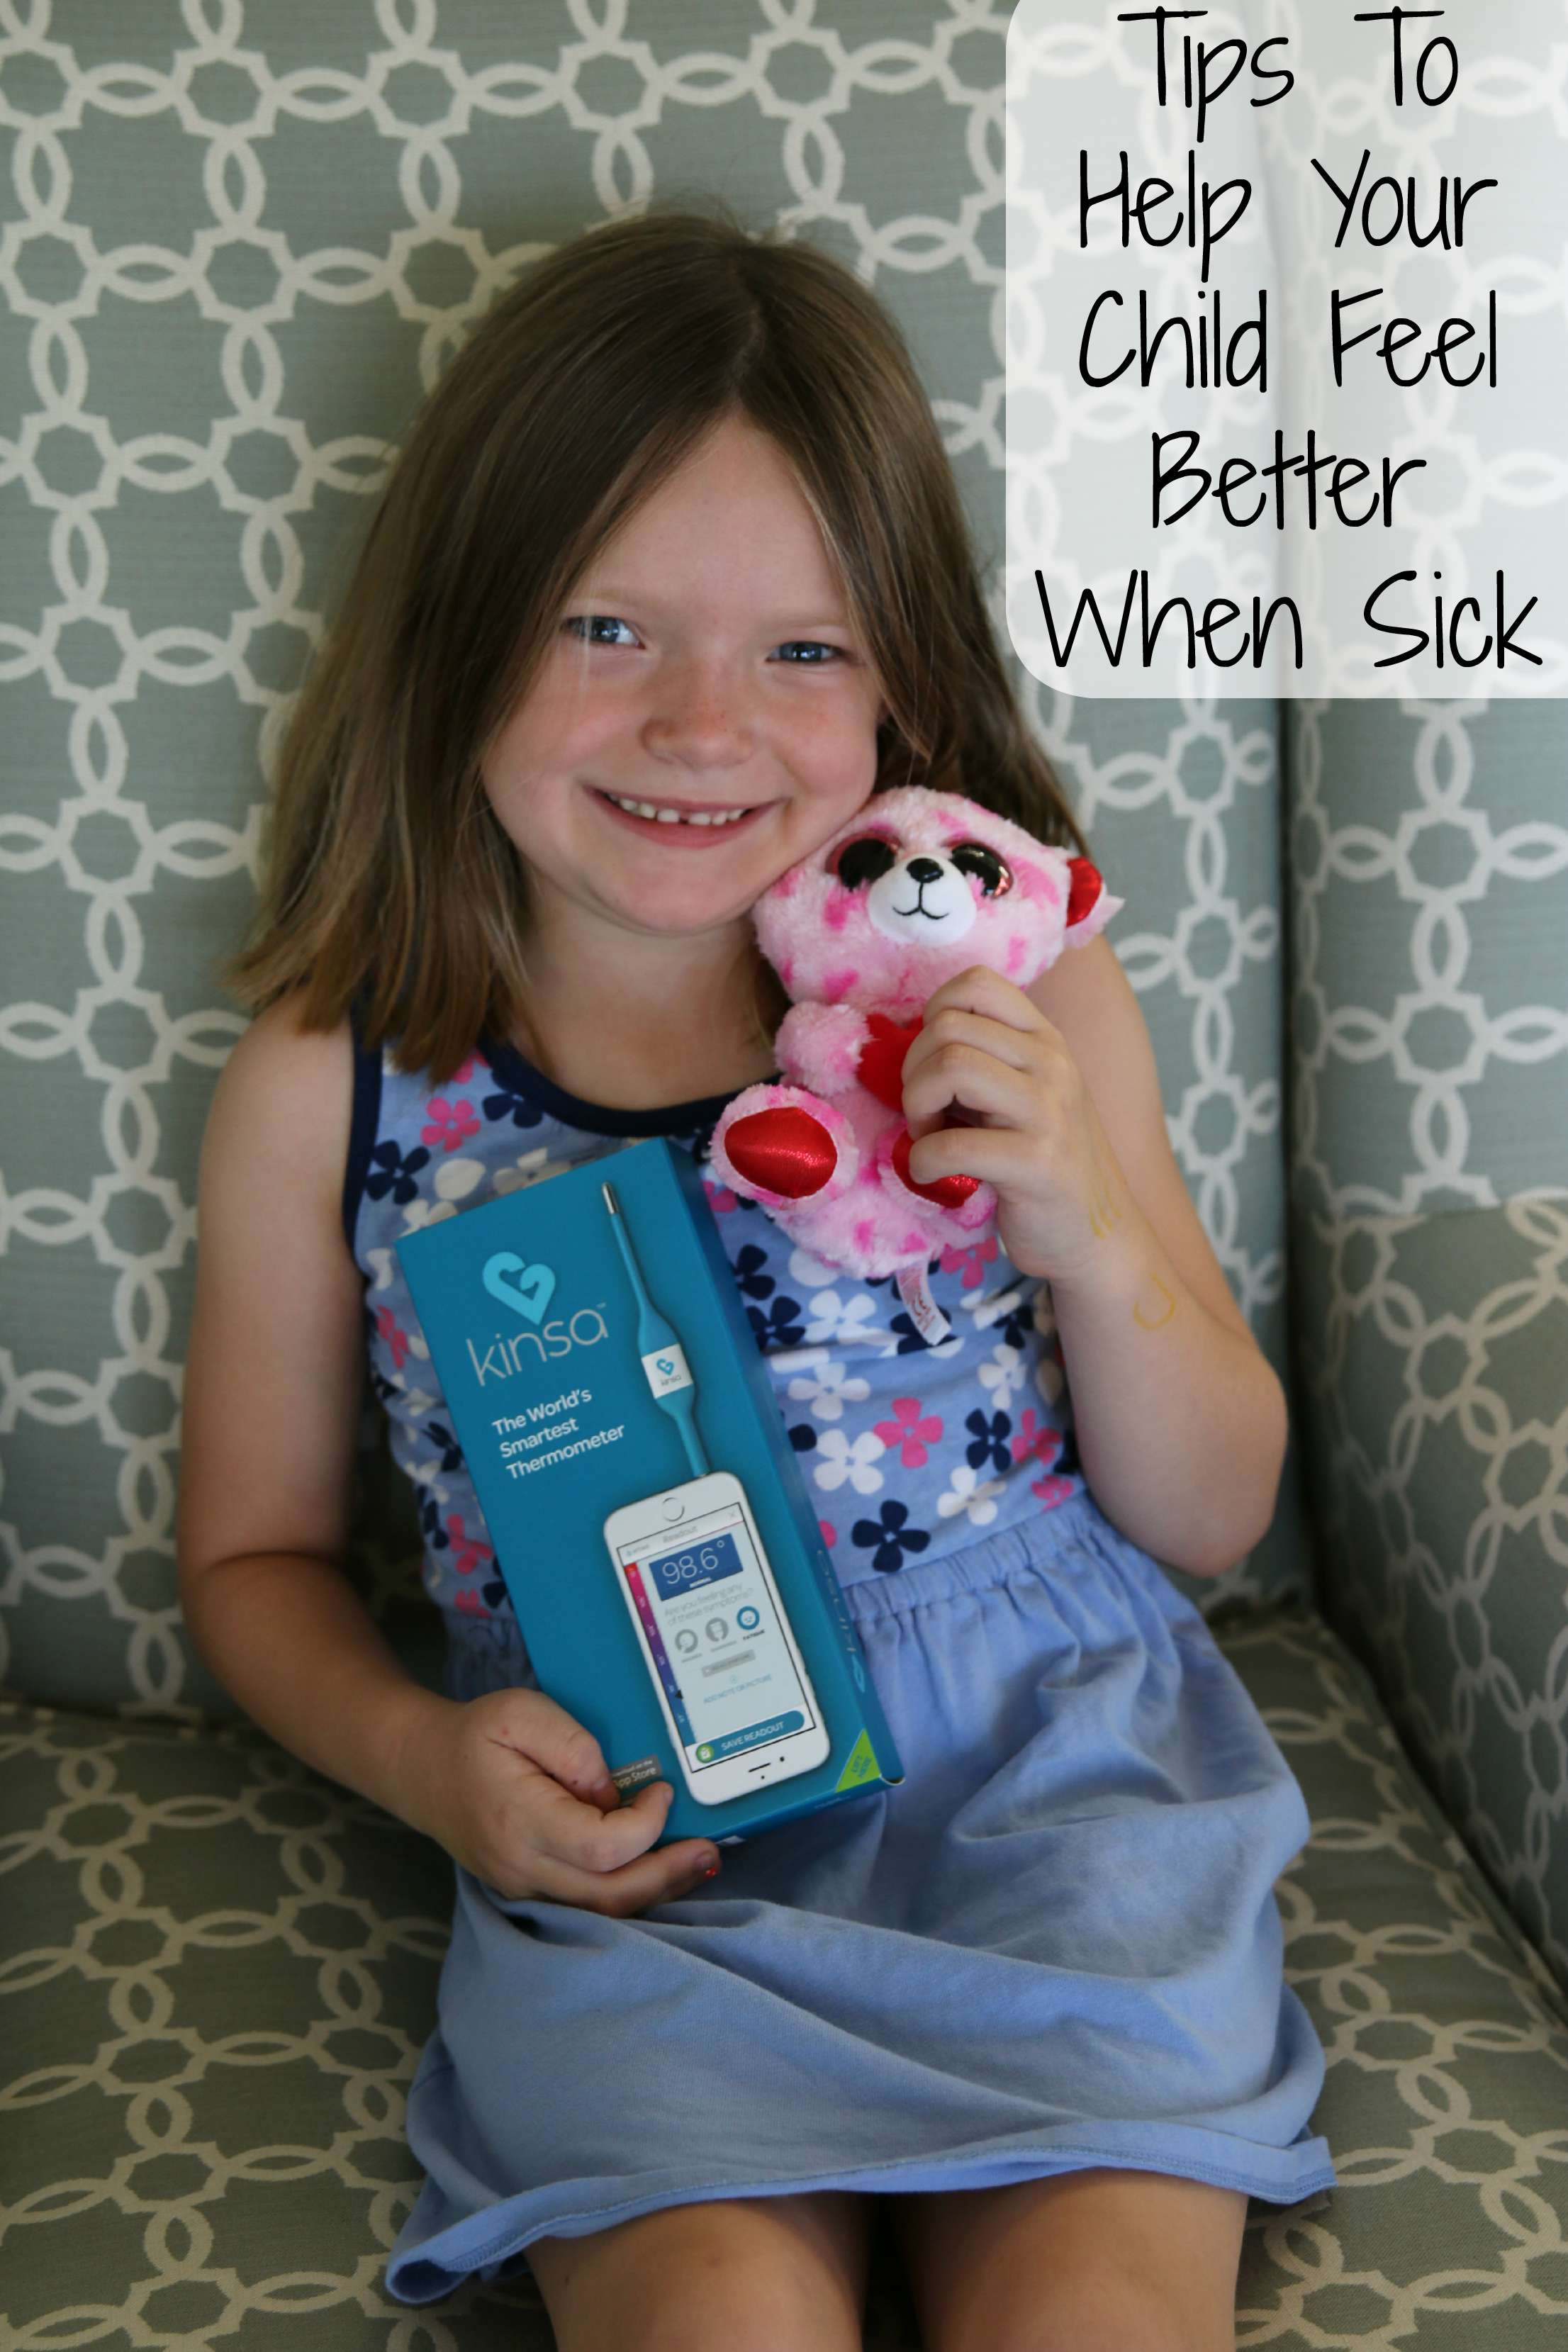 Tips To Help Your Child Feel Better When Sick